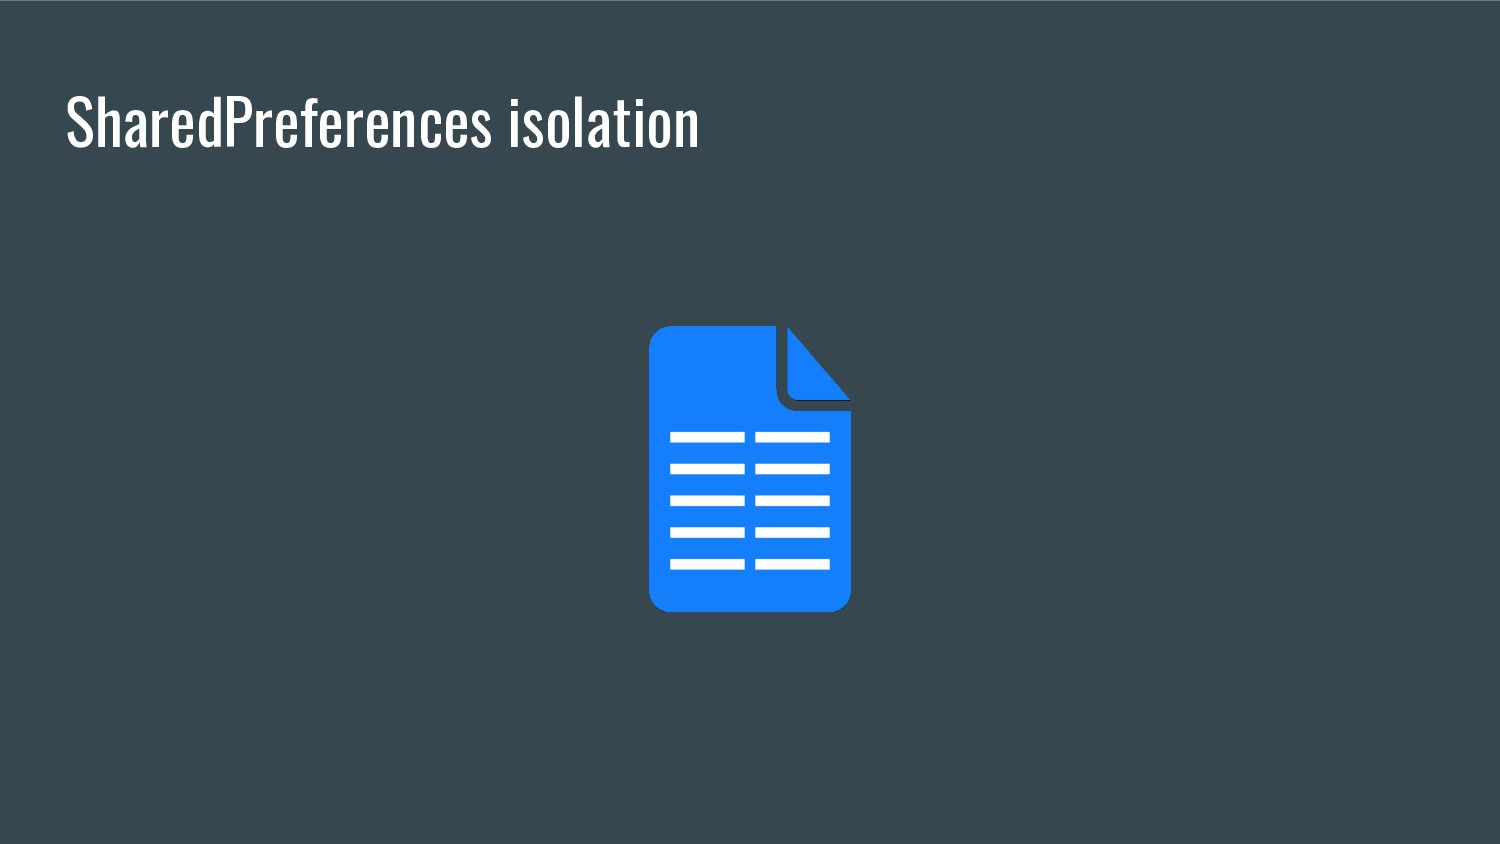 SharedPreferences isolation